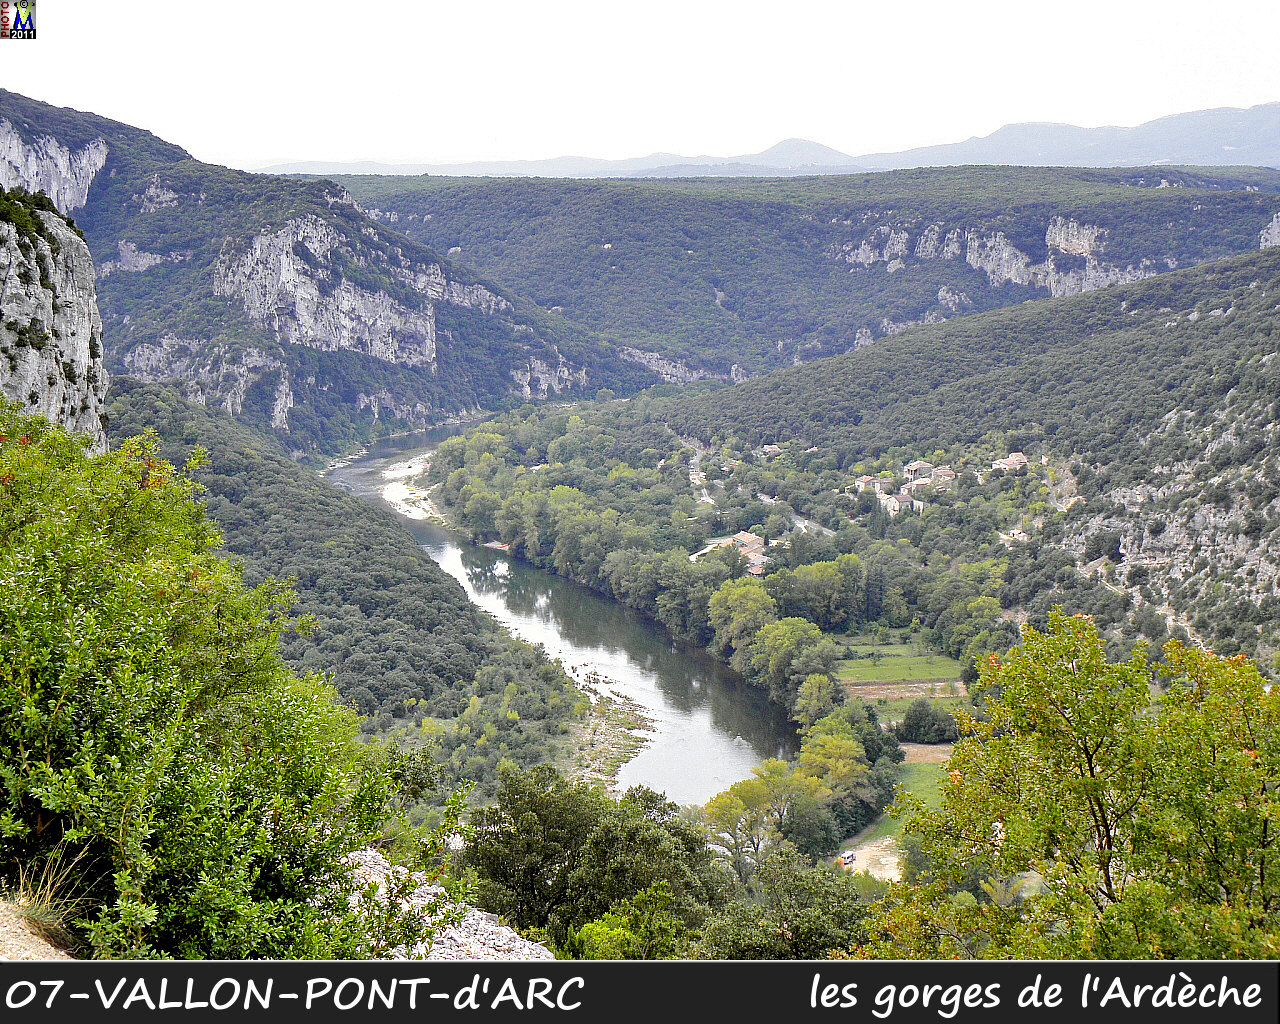 07VALLON-PONT-ARC_gorges_124.jpg